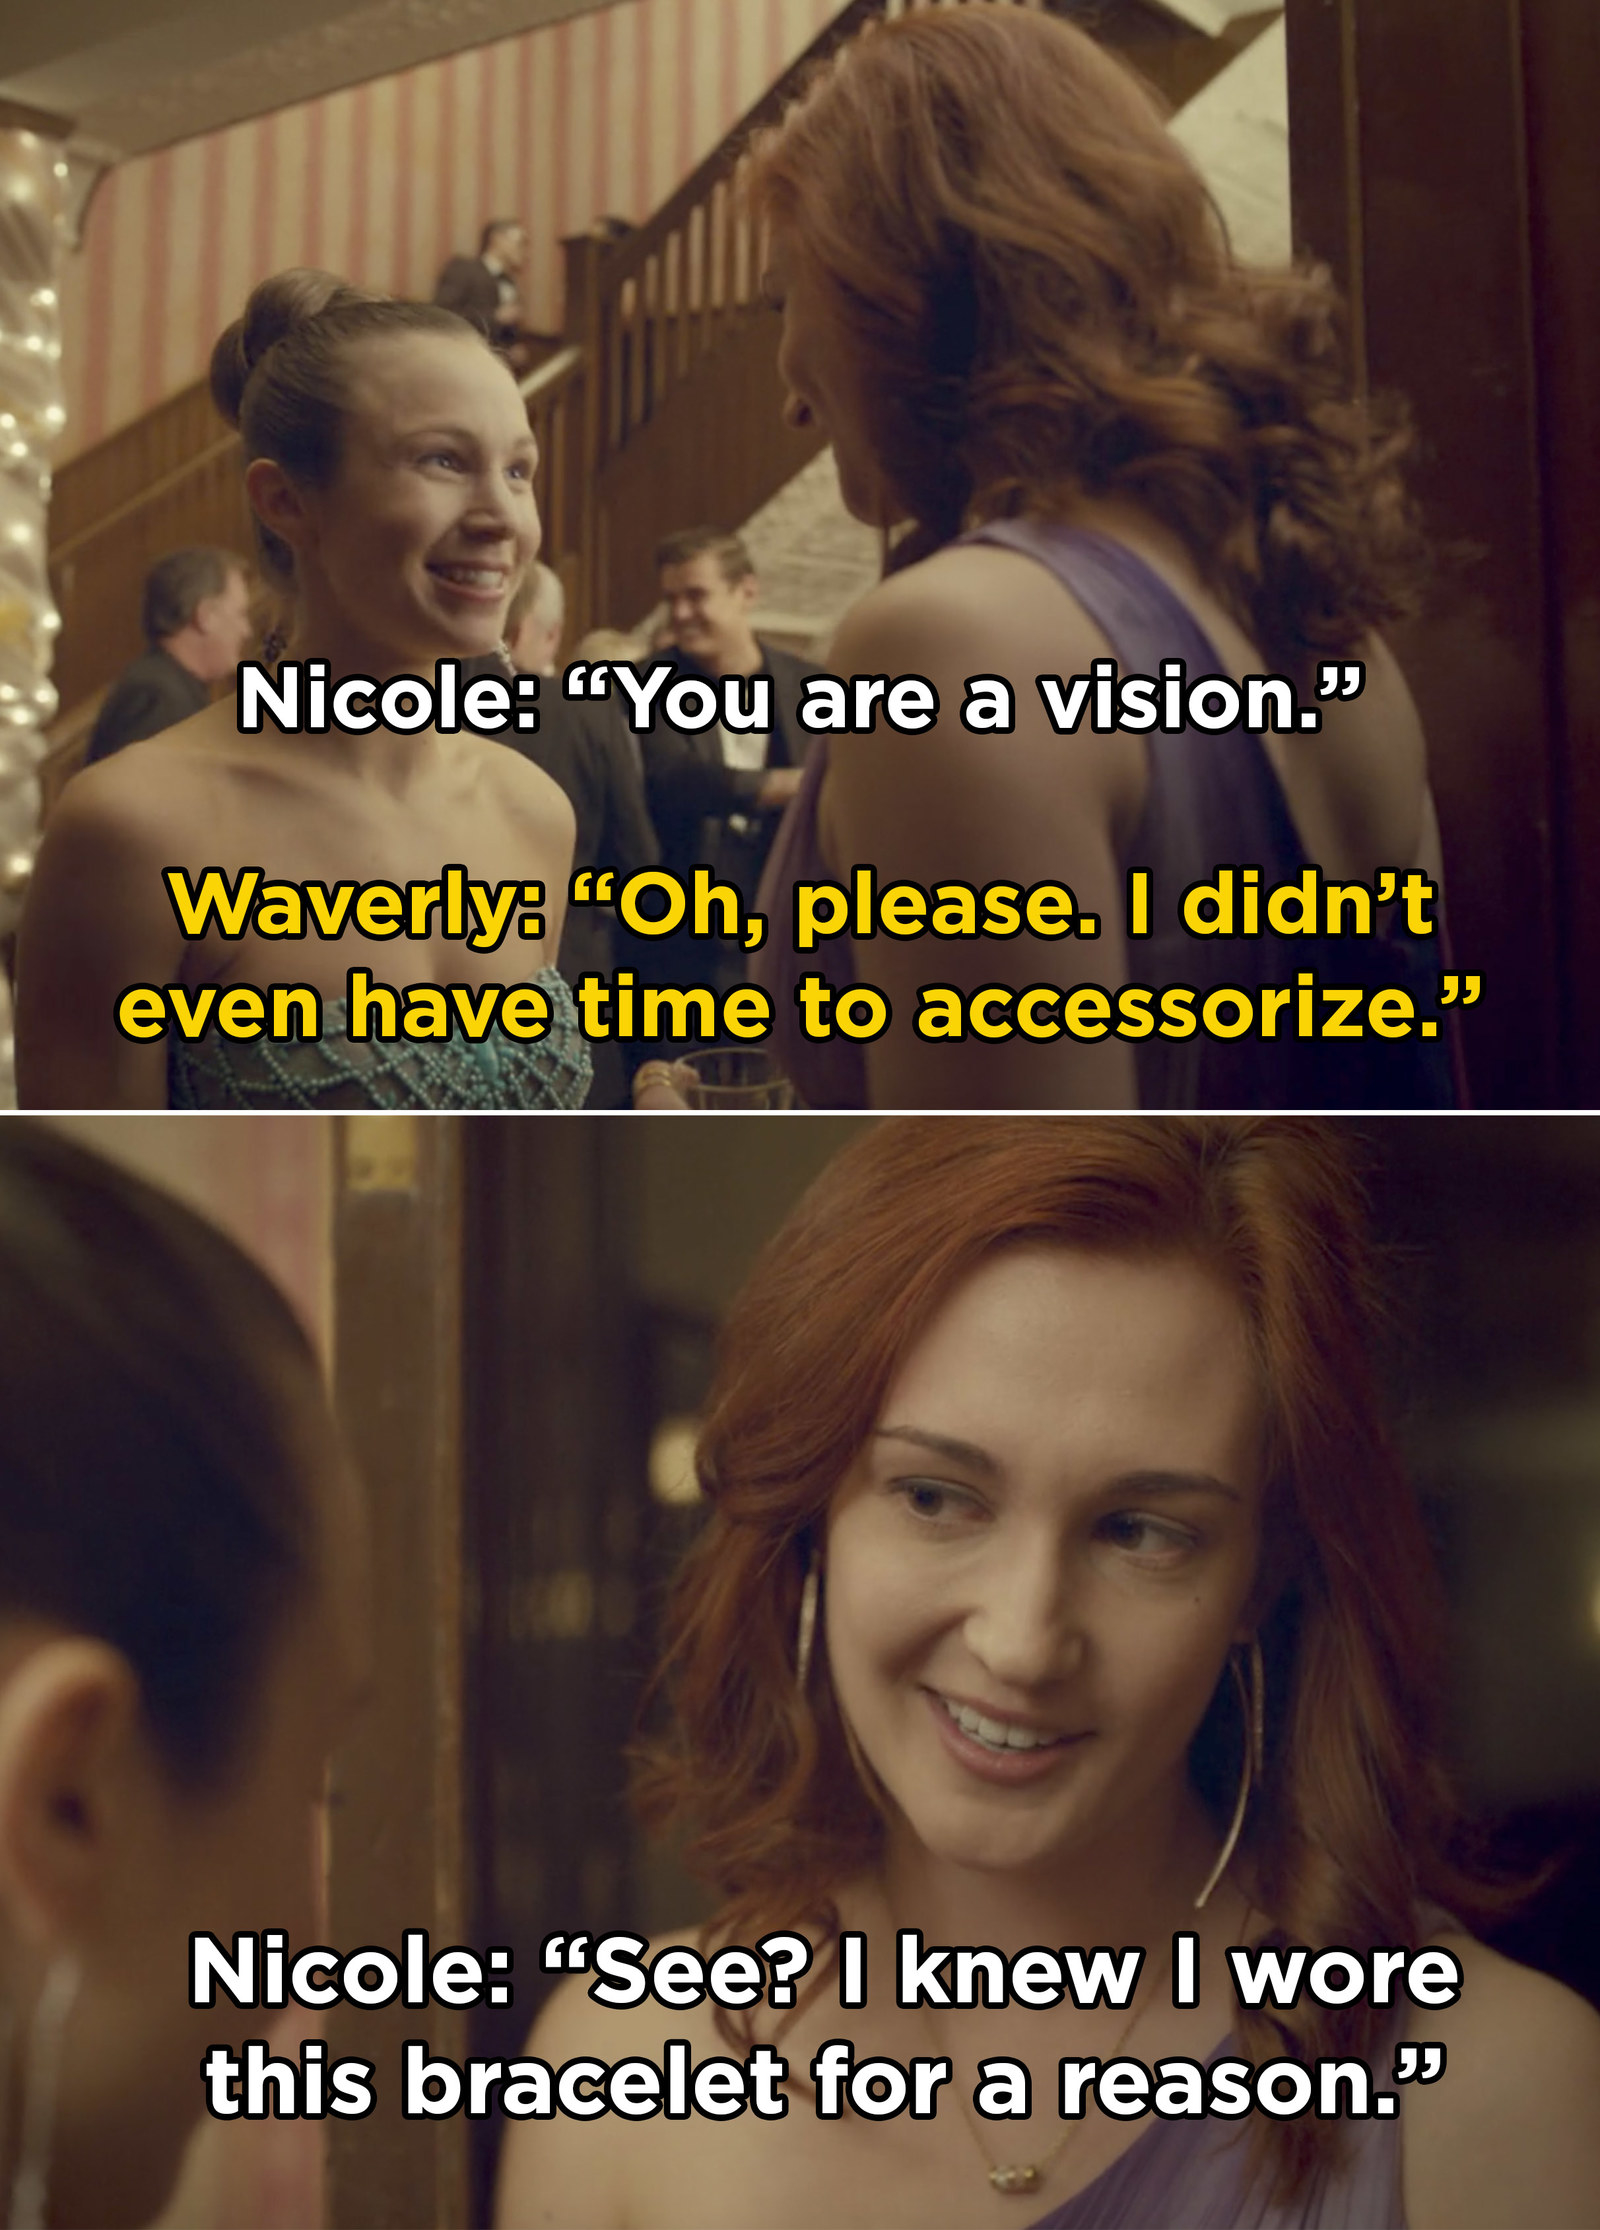 Wynonna Earp Best Waverly And Nicole Moments Waverly's childhood crush, nicole, is back in town just in time to distract her from the local baking competition she's desperate to win. wynonna earp best waverly and nicole